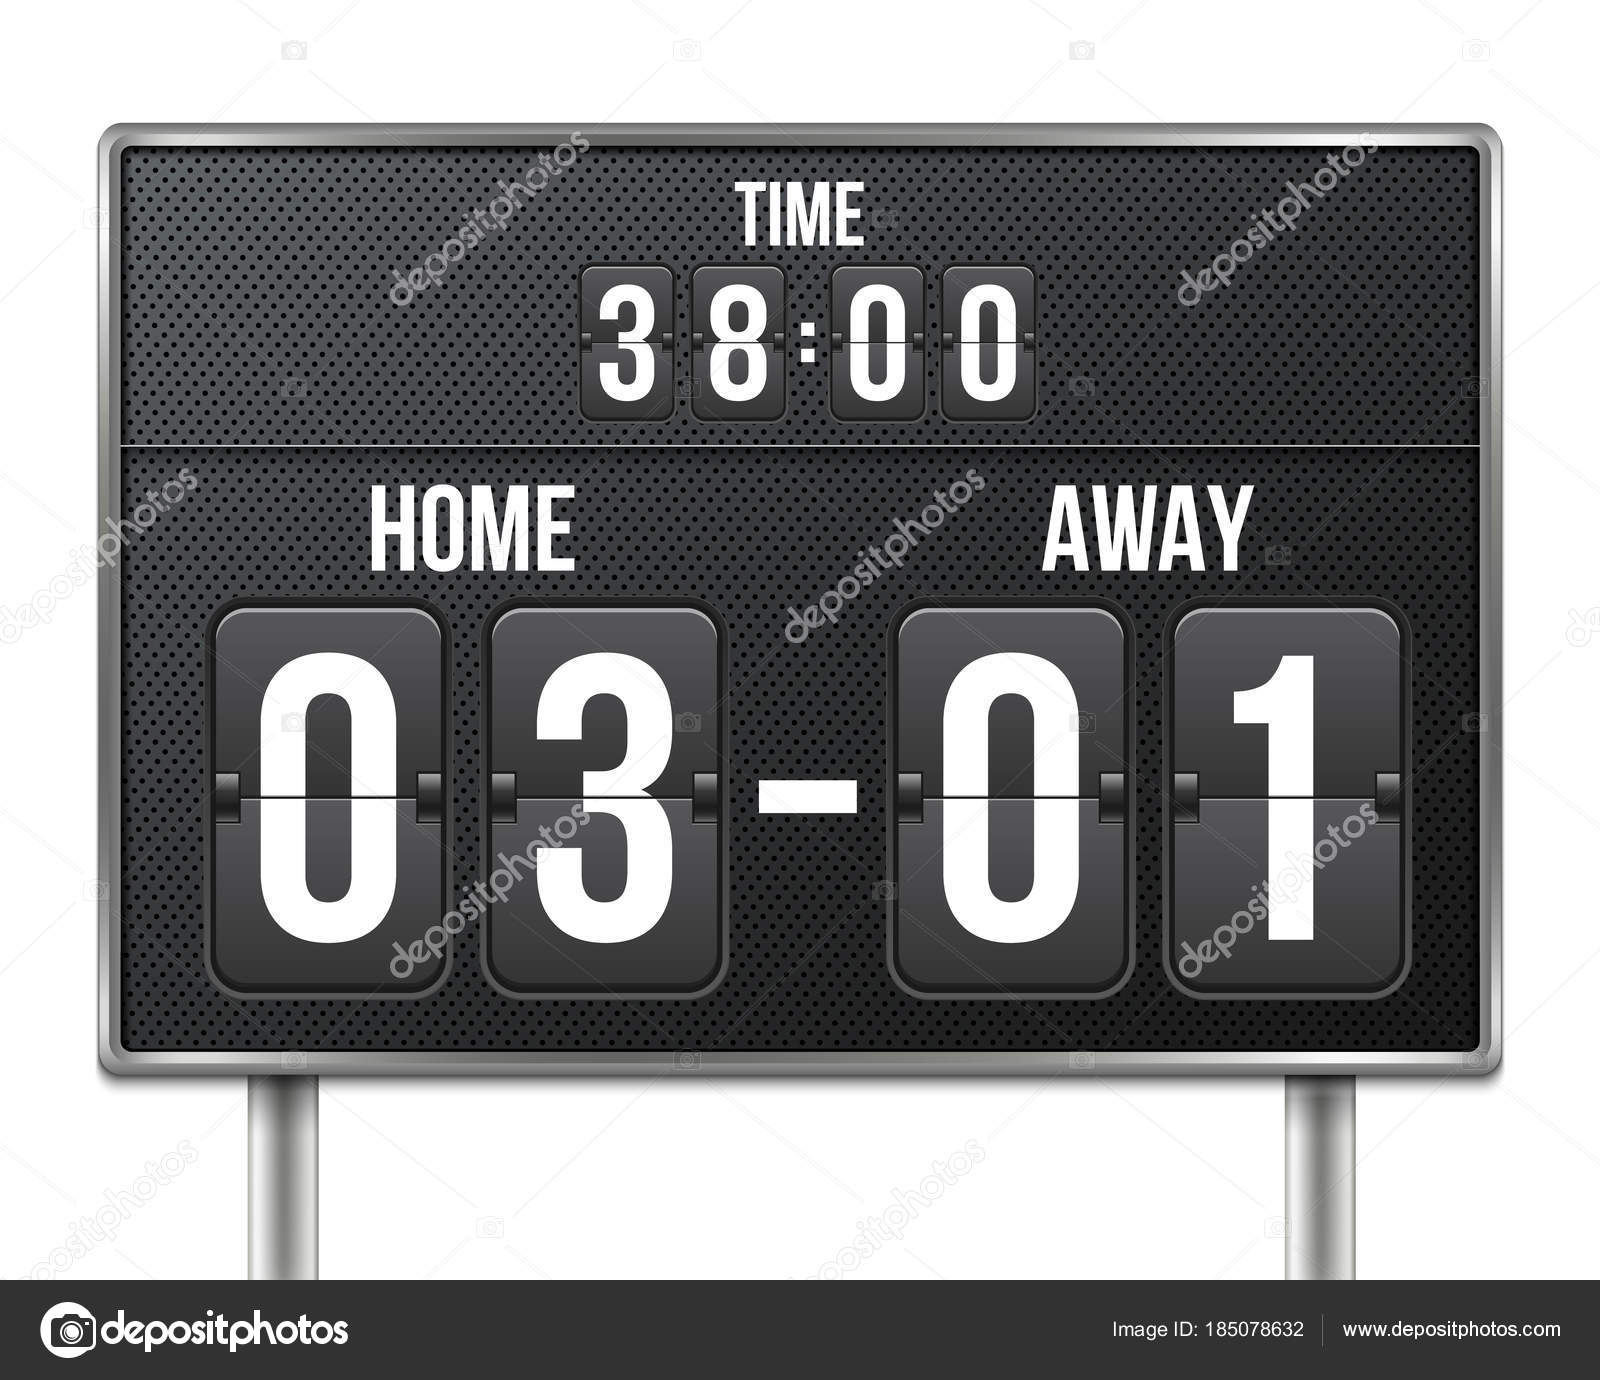 Creative Vector Illustration Of Soccer Football Mechanical Scoreboard Isolated On Transparent Background Art Design Retro Vintage Countdown With Time